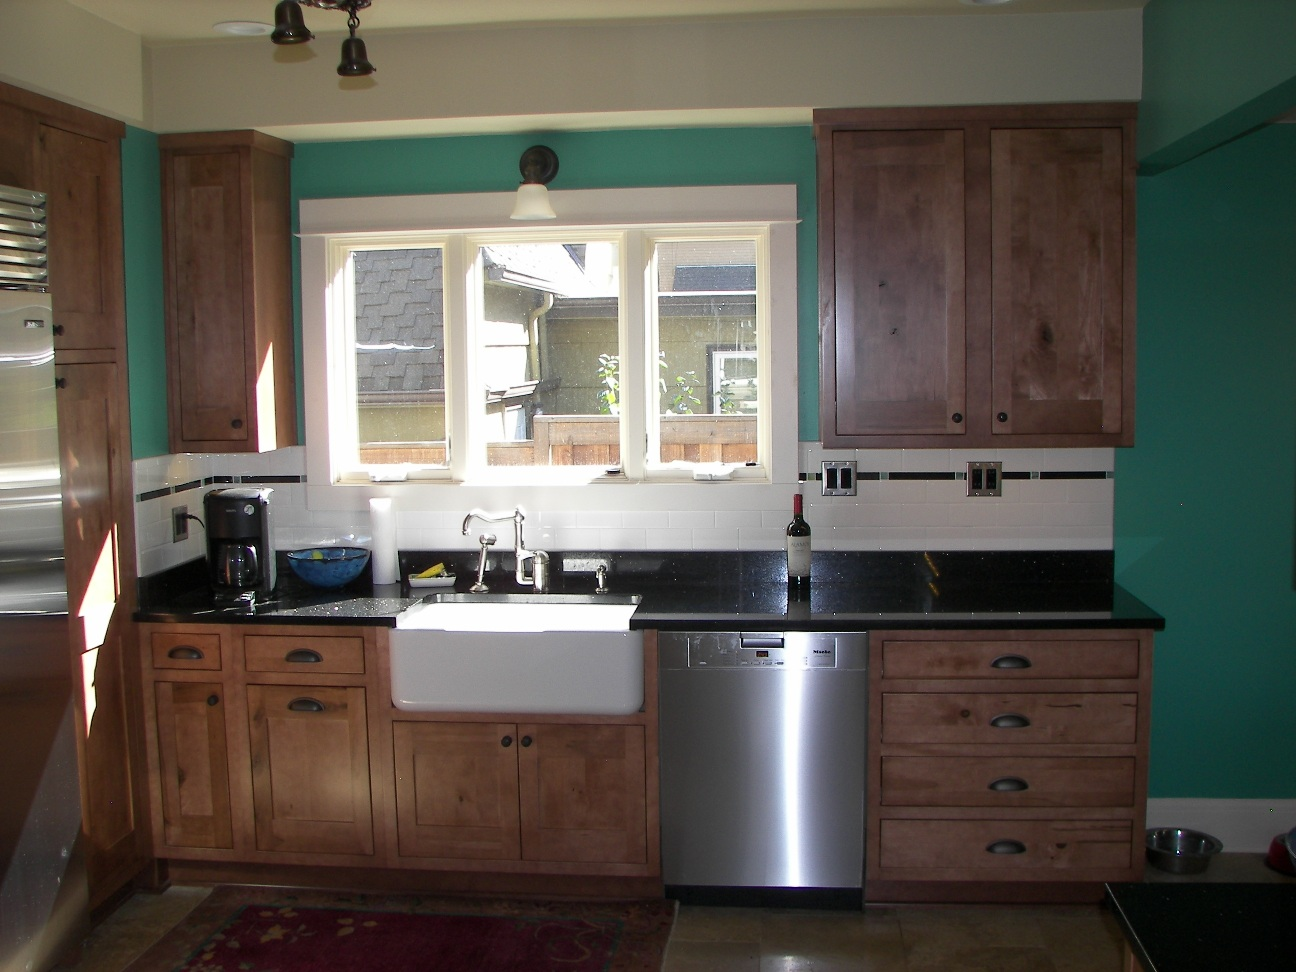 We Used Roll Outs Where Ever We Could To Give Total Access To The Cabinets.  There Is Also A Cookie Sheet Cabinet And A Recycle Bin.